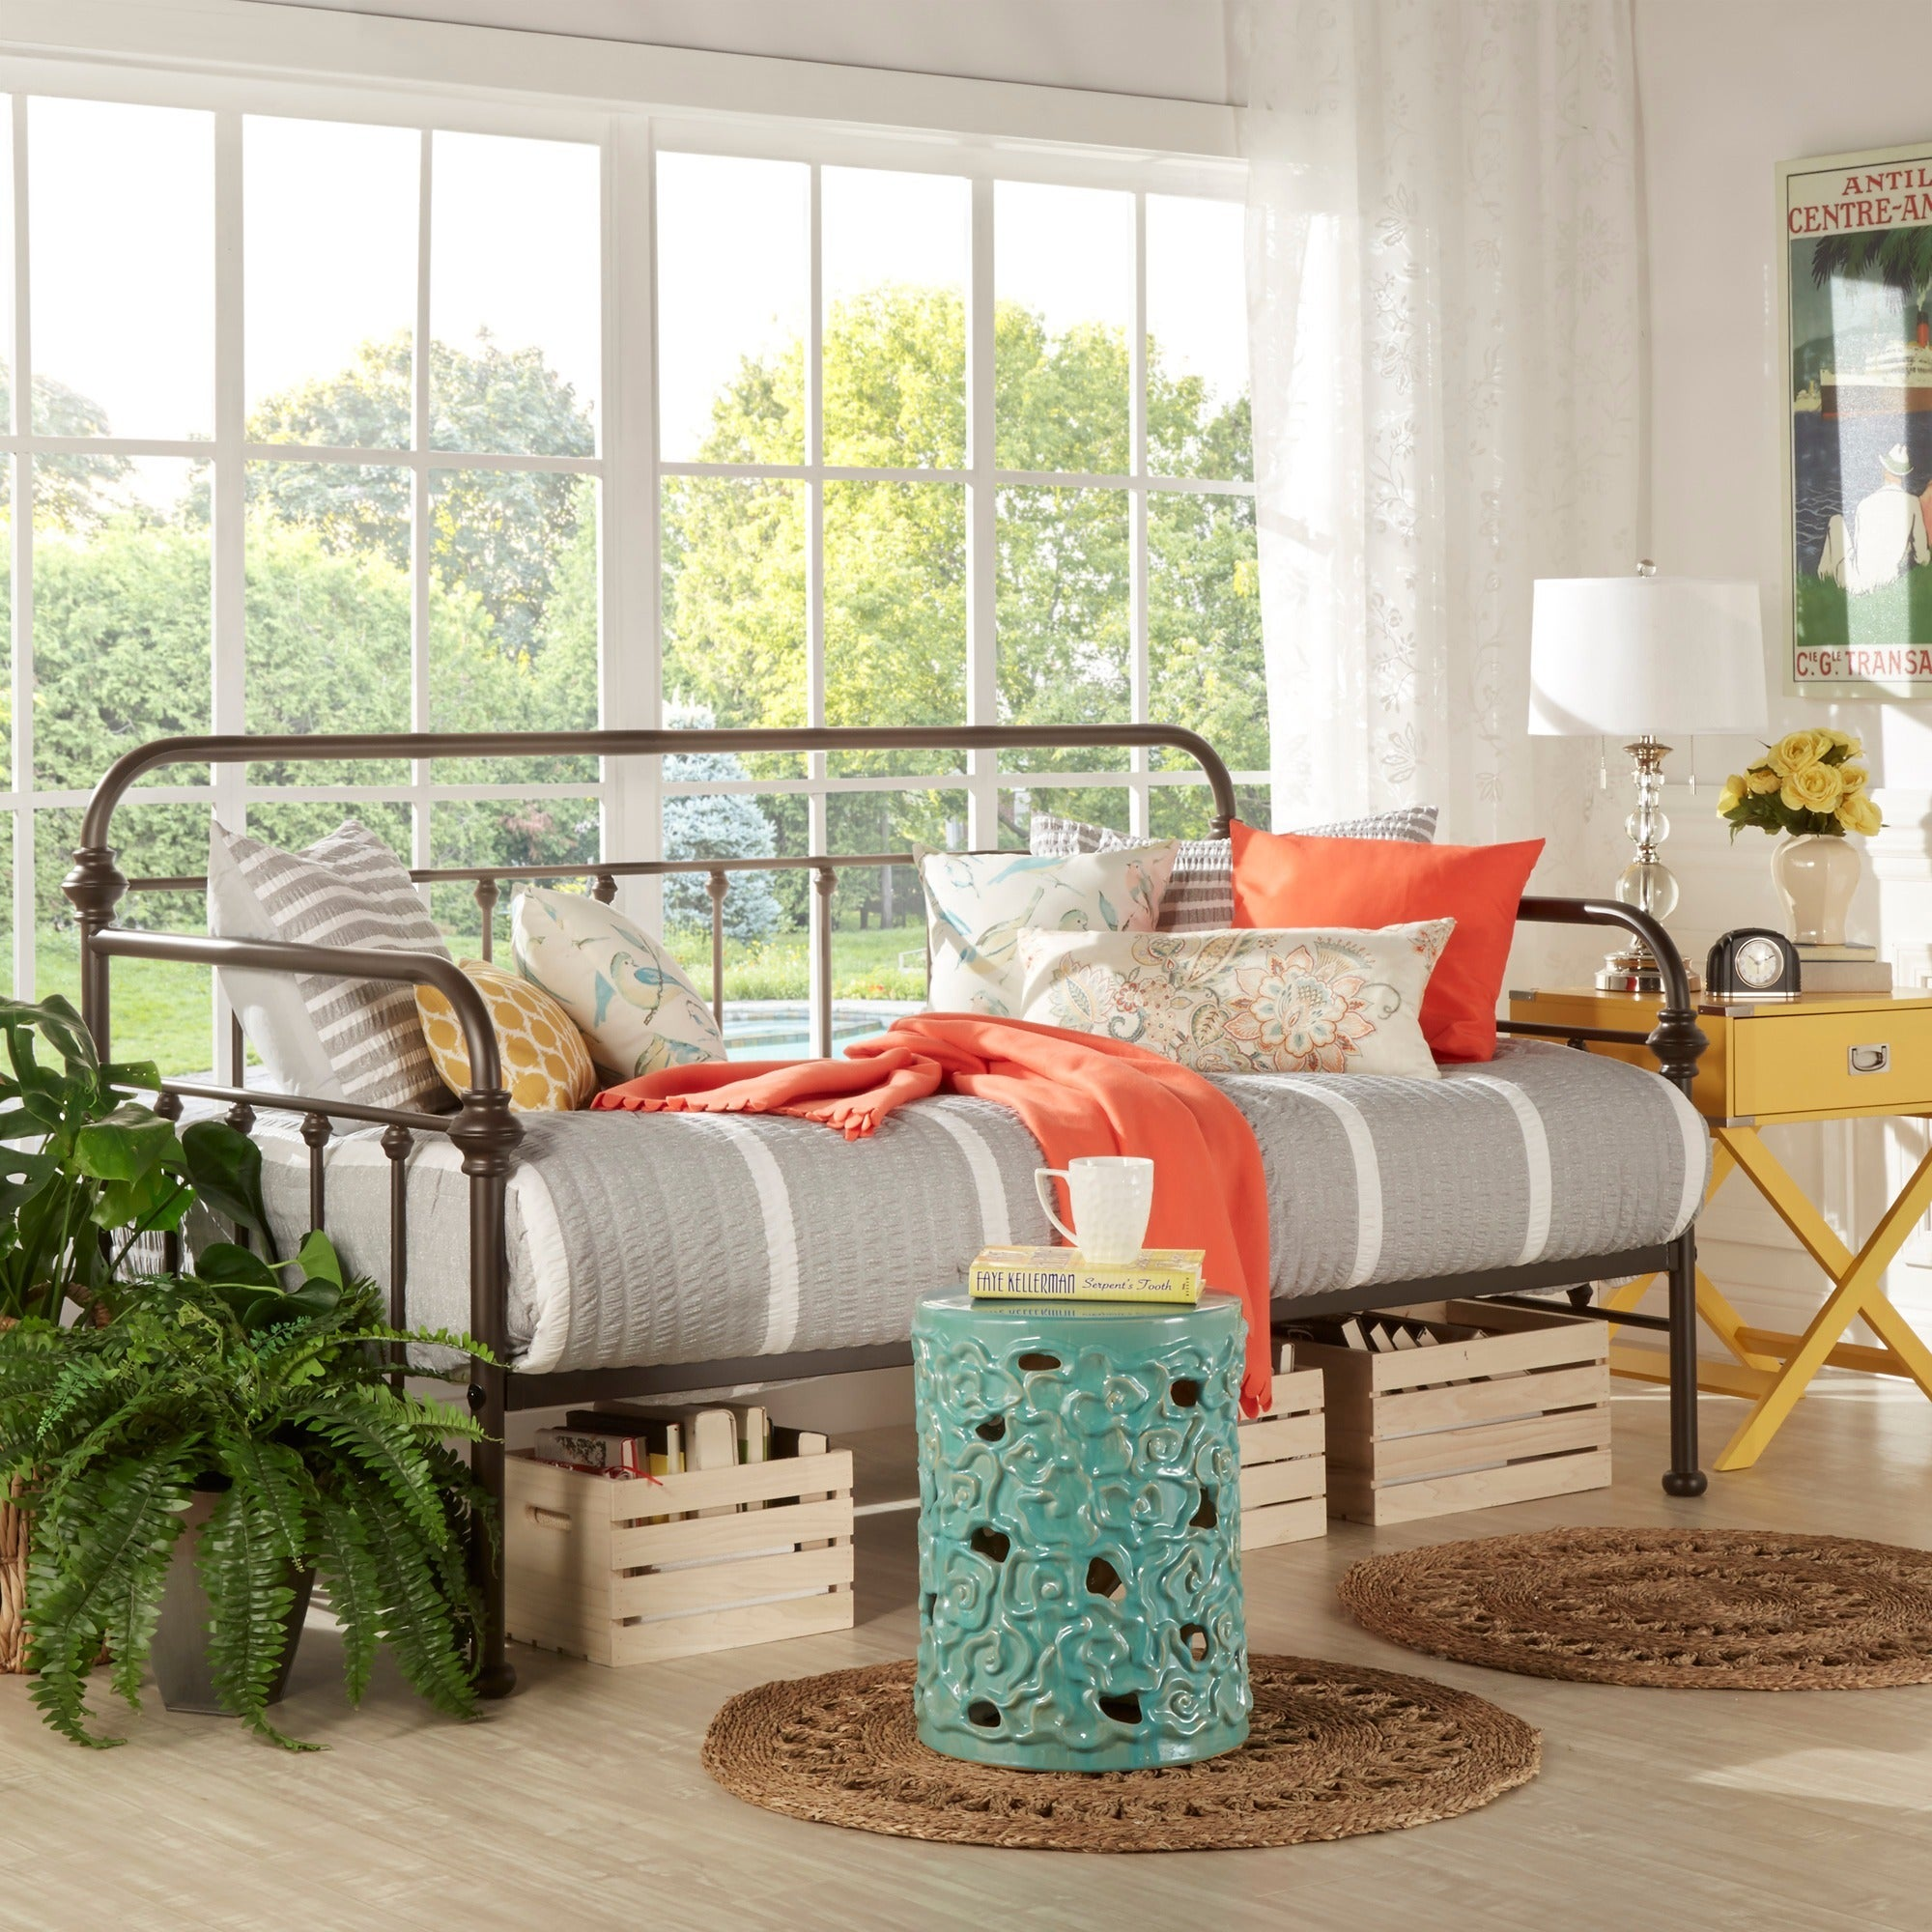 Giselle Antique Graceful Lines Iron Metal Daybed by iNSPI...